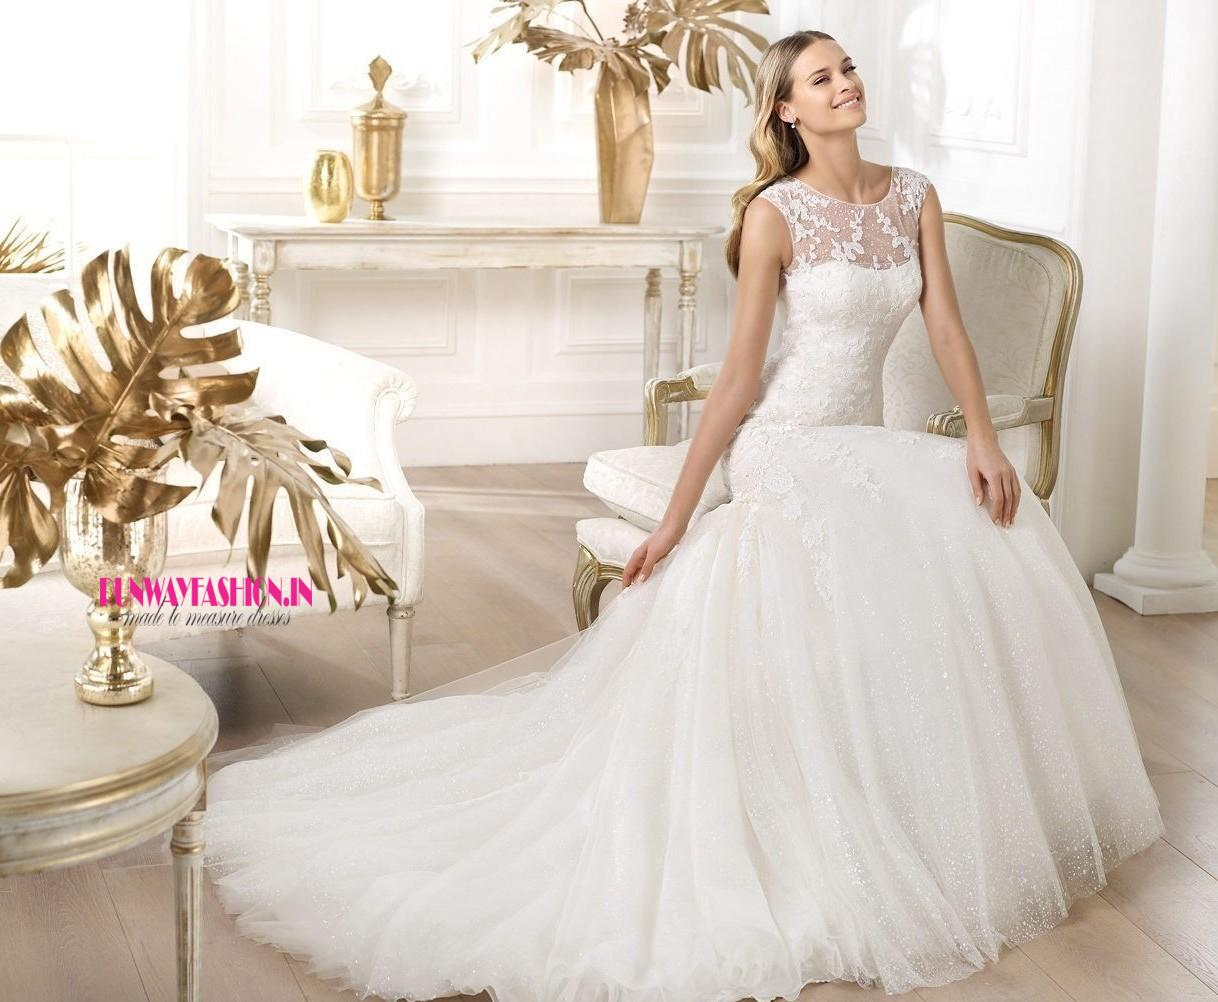 Christian Bridal Gowns For Rent In Chennai : Christian wedding gowns dresses custom tailor made